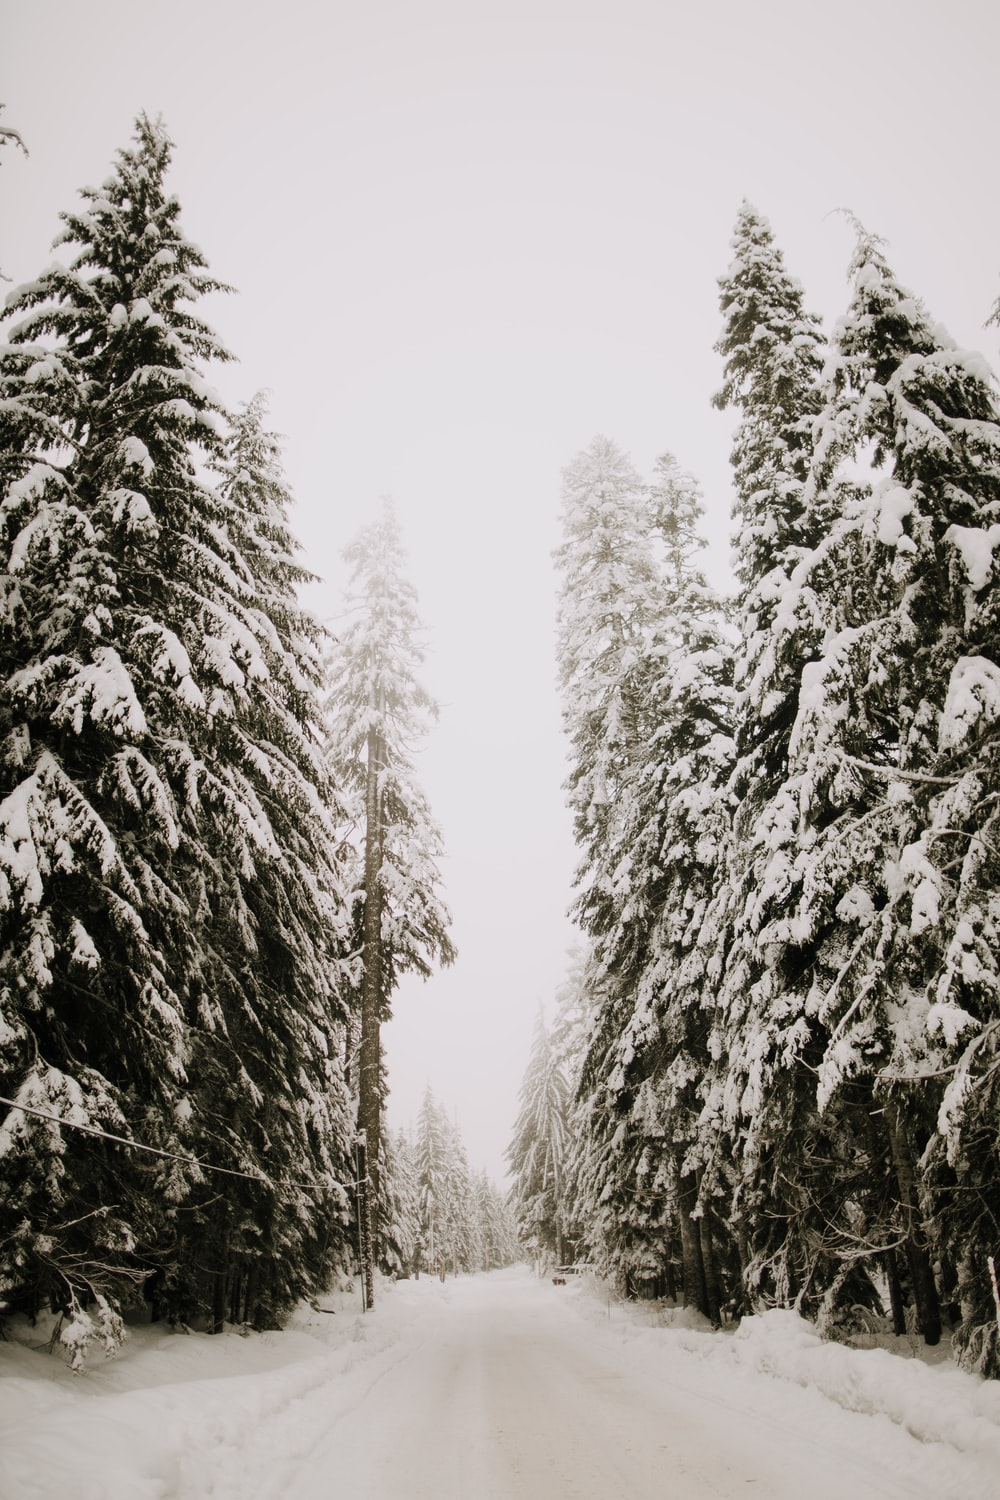 grayscale photo of trees covered with snow